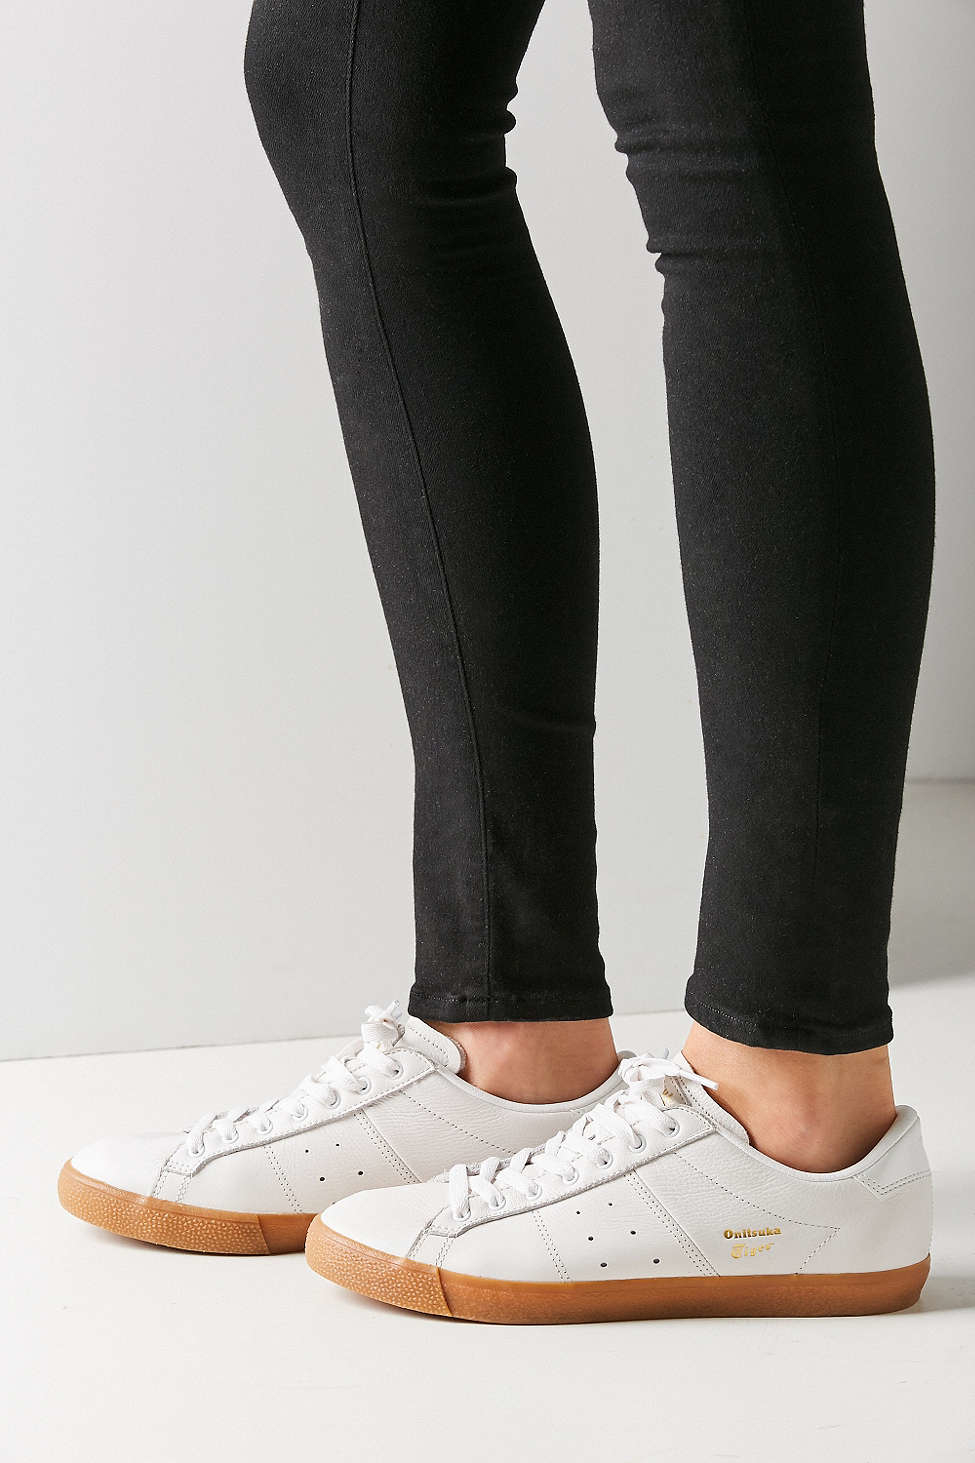 Asics Onitsuka Tiger Lawnship Gum Sole Sneaker In White Lyst